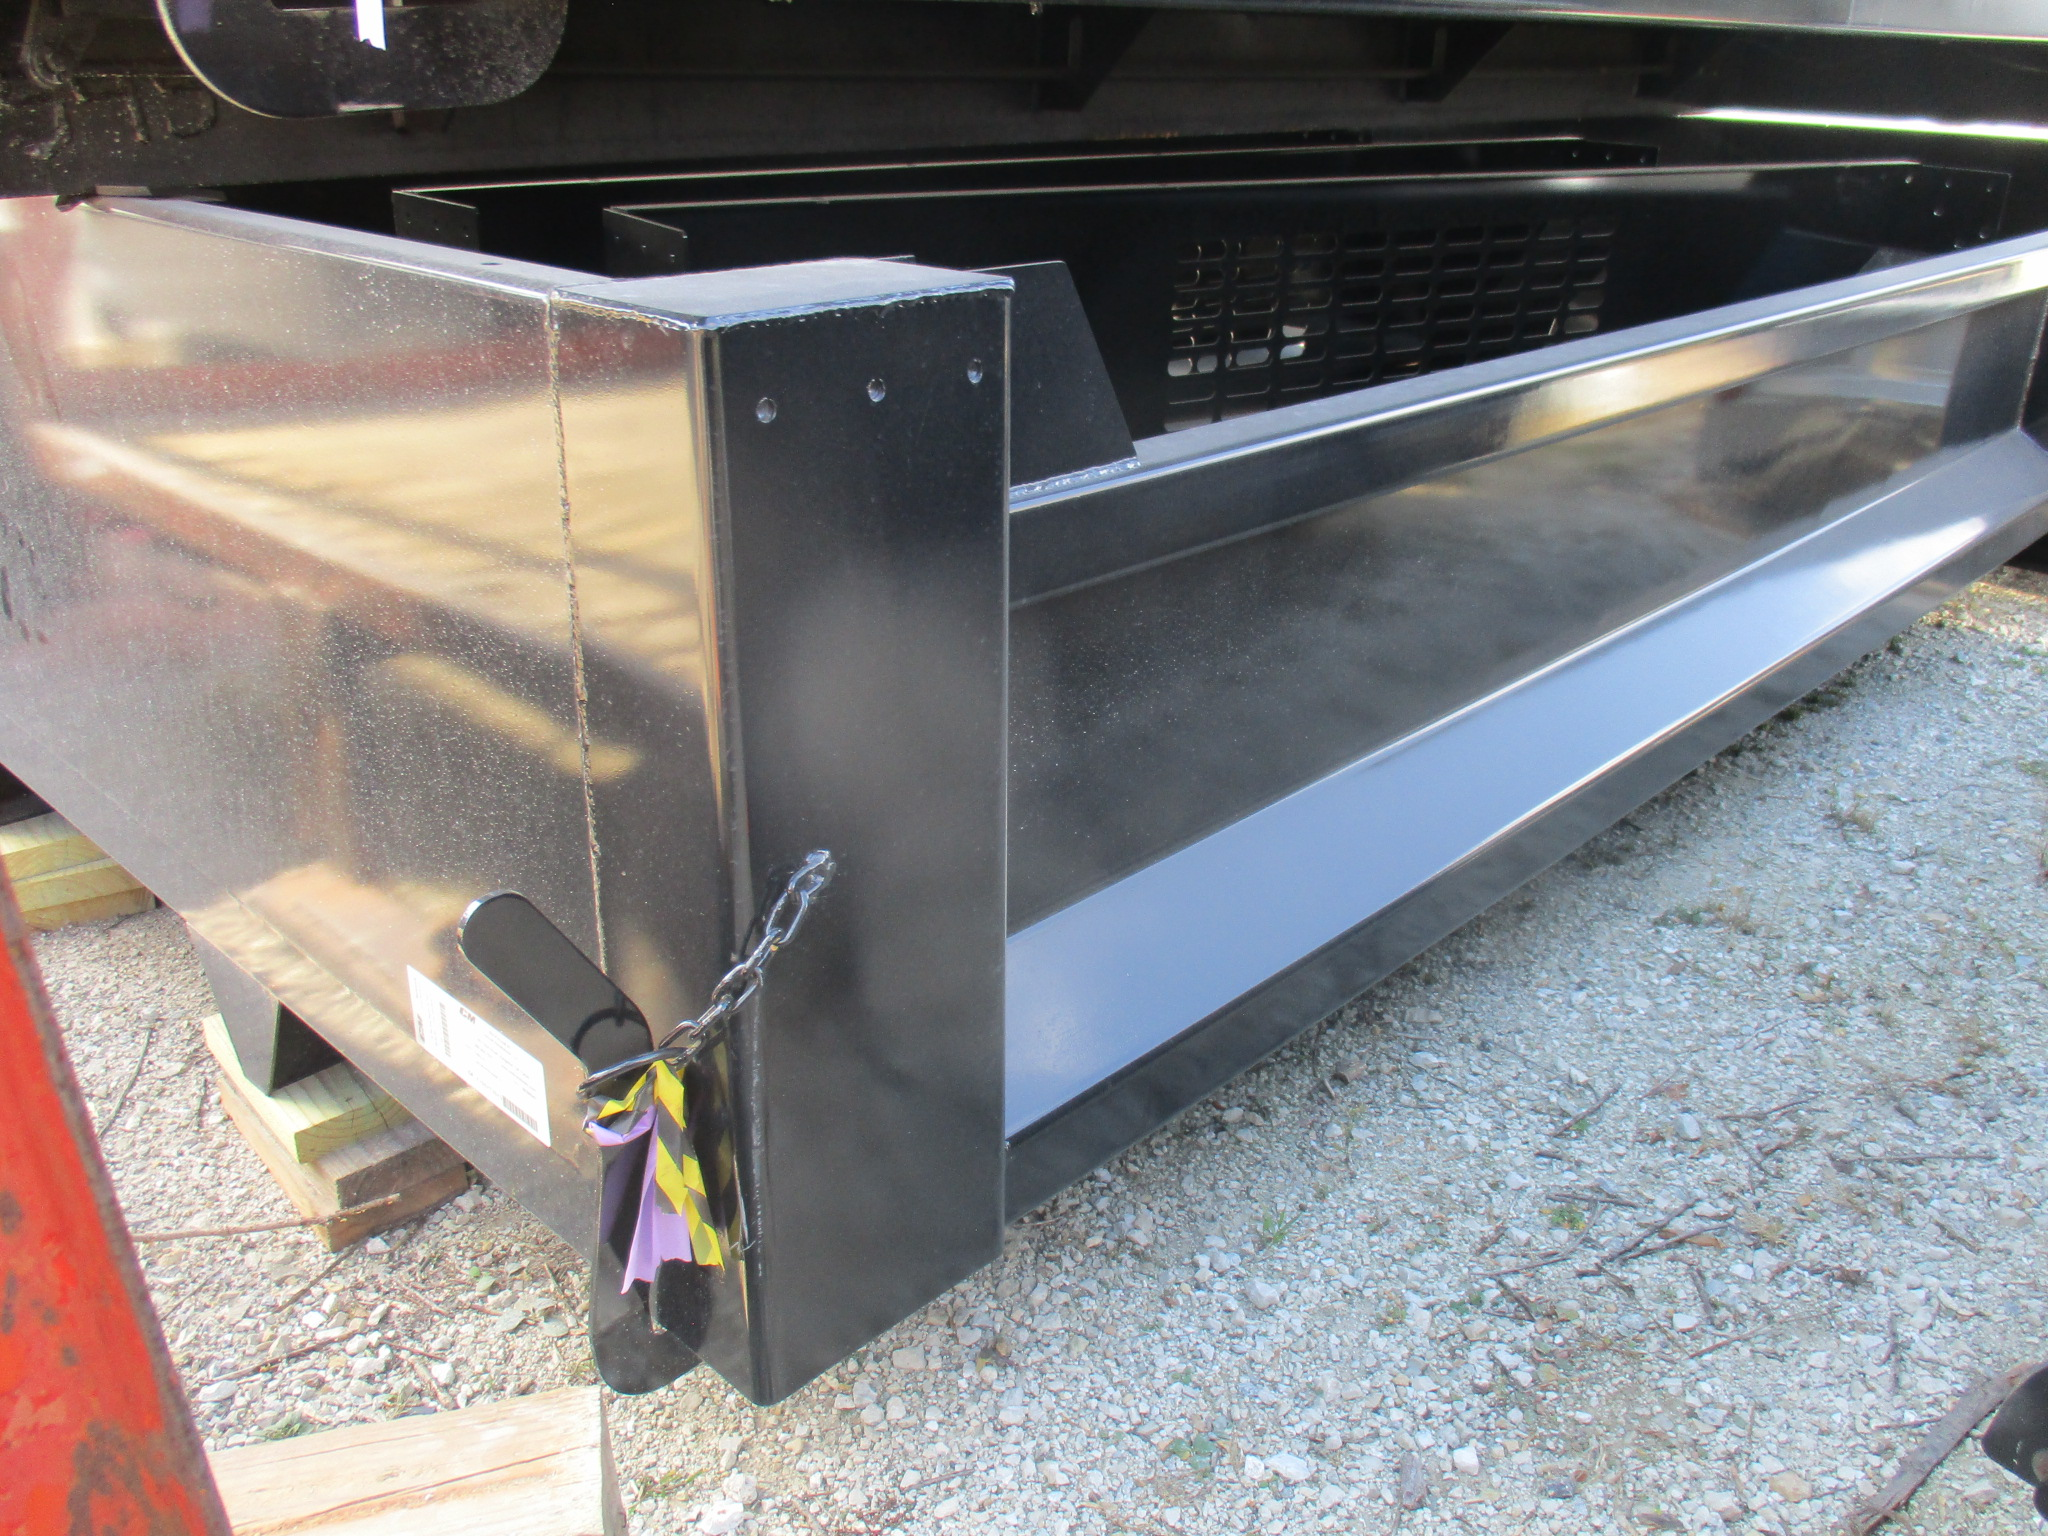 New CM 11 x 97 DP Flatbed Truck Bed